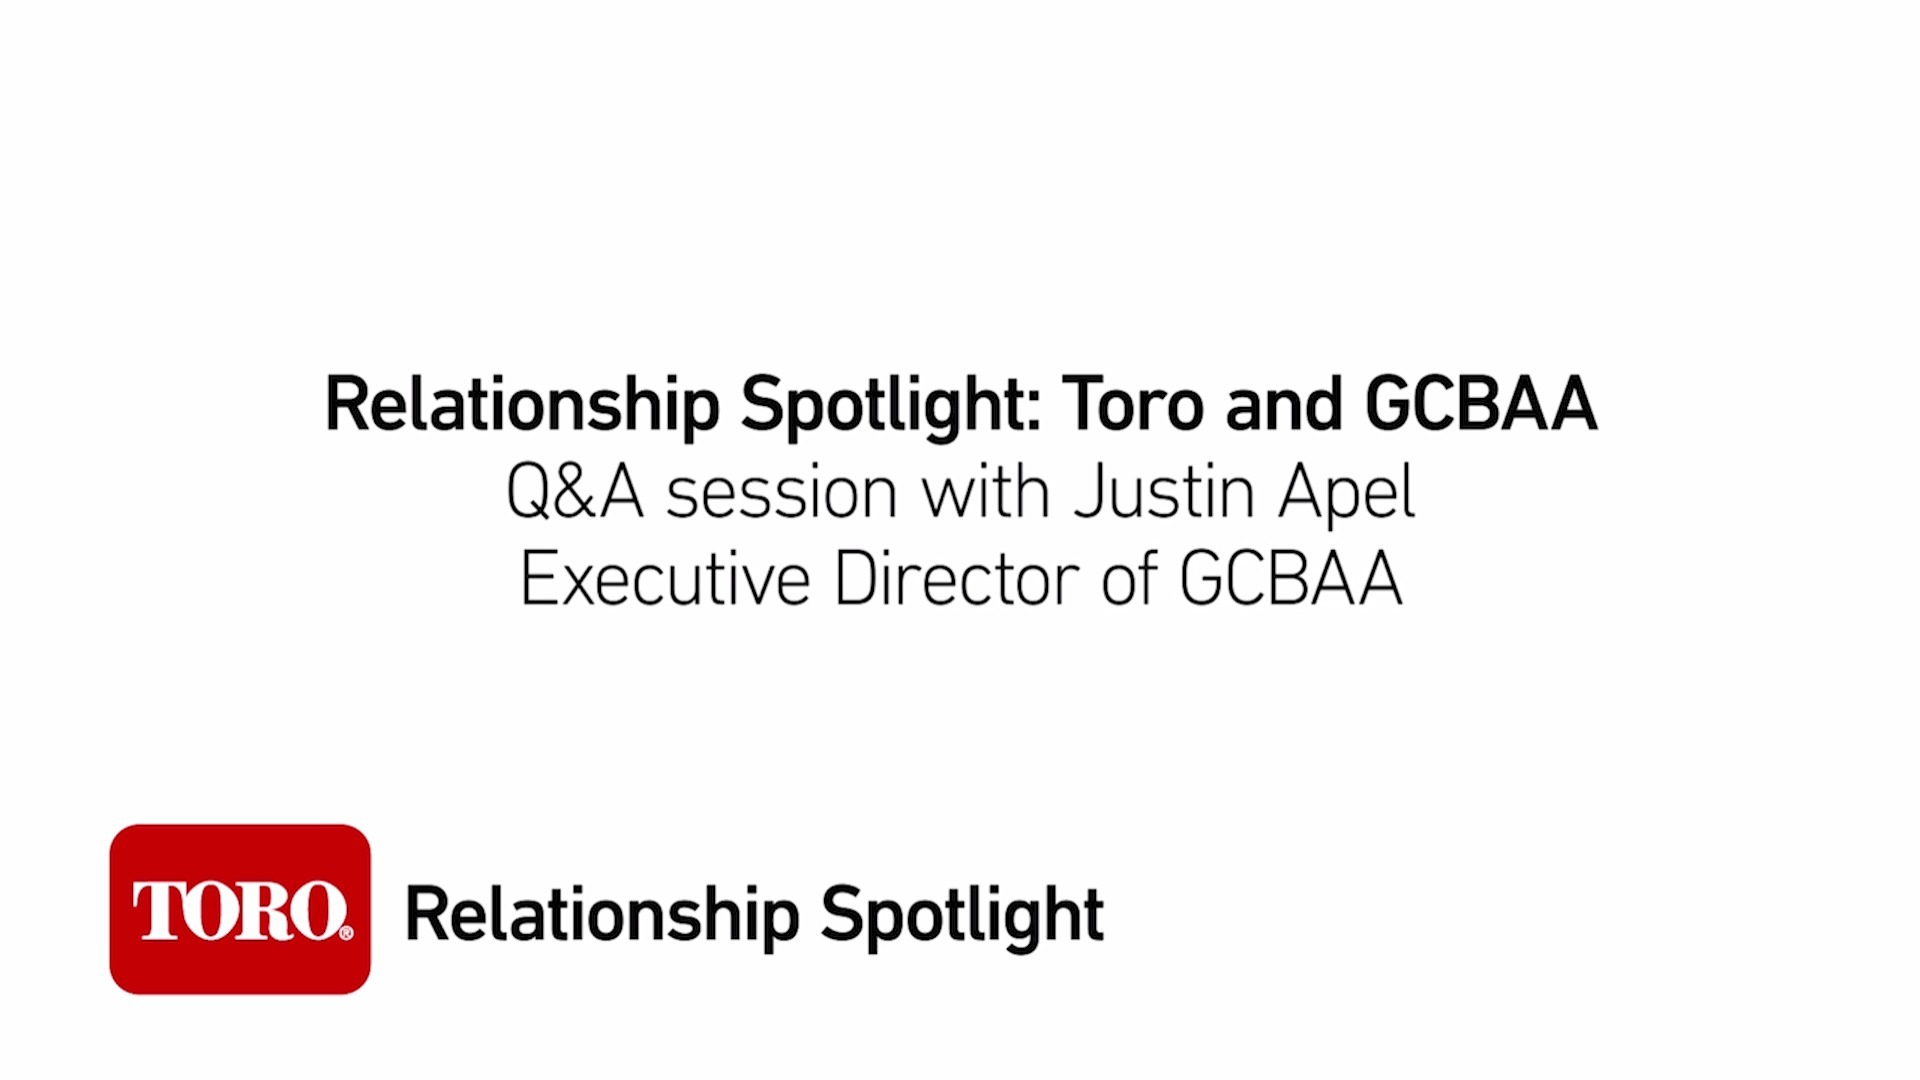 Relationship Spotlight: What is GCBAA?